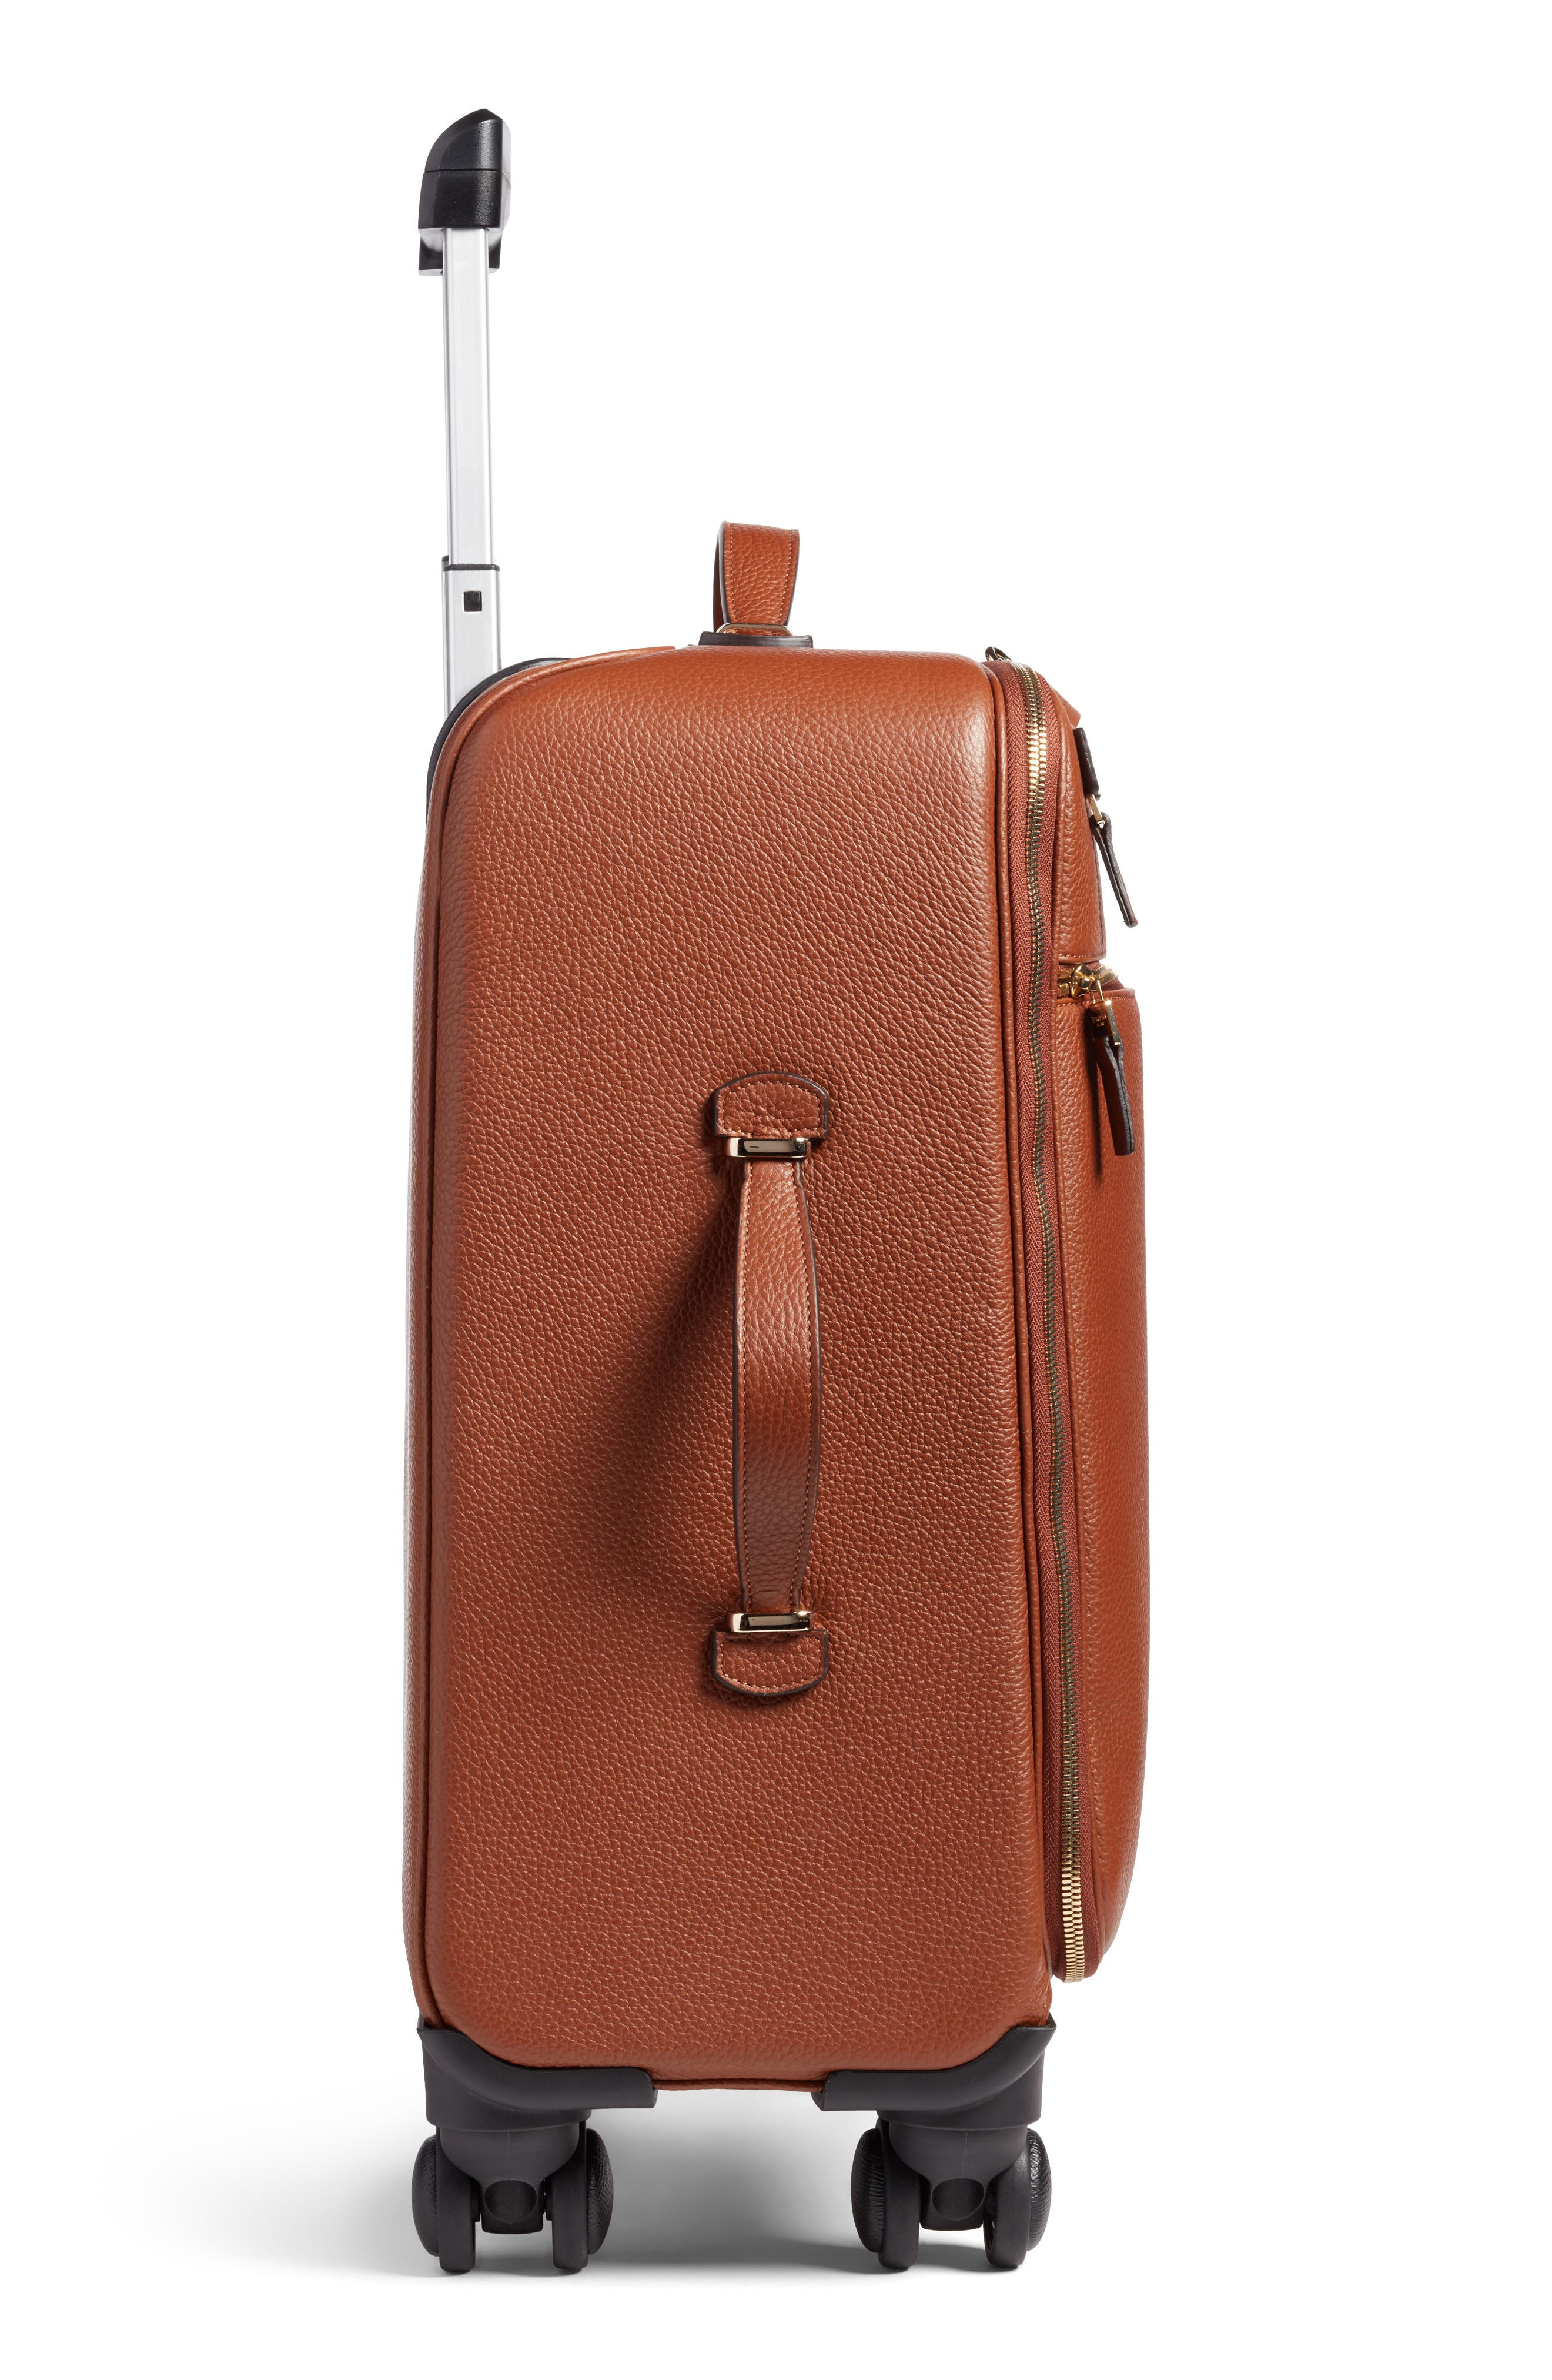 Trolley Spinner Wheeled Carry-On Suitcase,                             Alternate thumbnail 4, color,                             Sienna